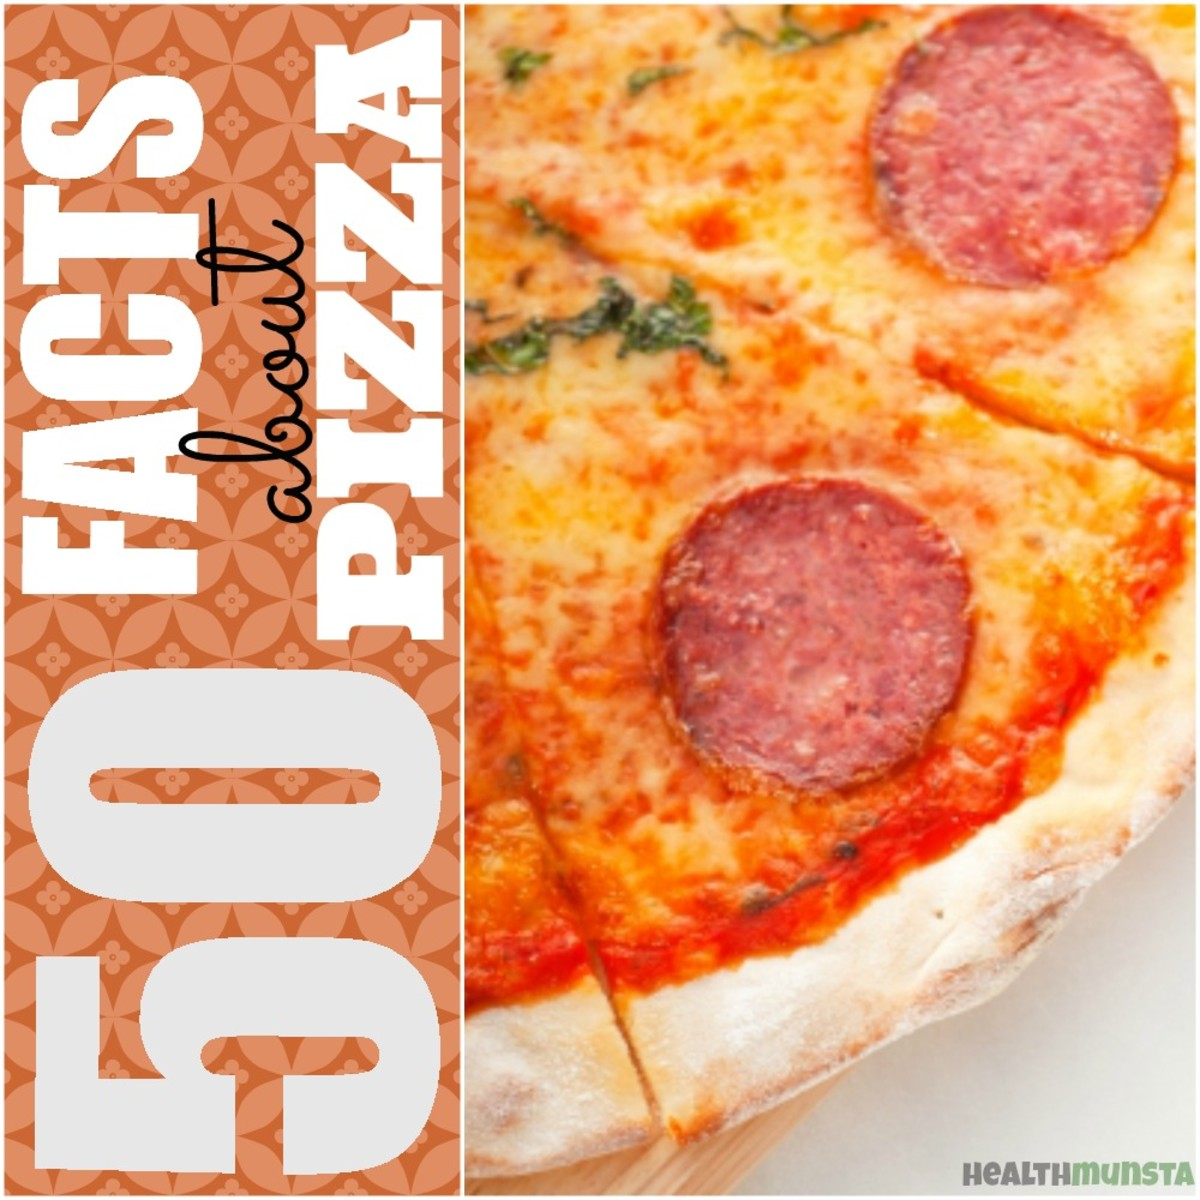 50 Fun Facts about Pizza | Health Facts, Business Facts, World Record Facts and many more interesting facts about the popular pizza you never knew before!